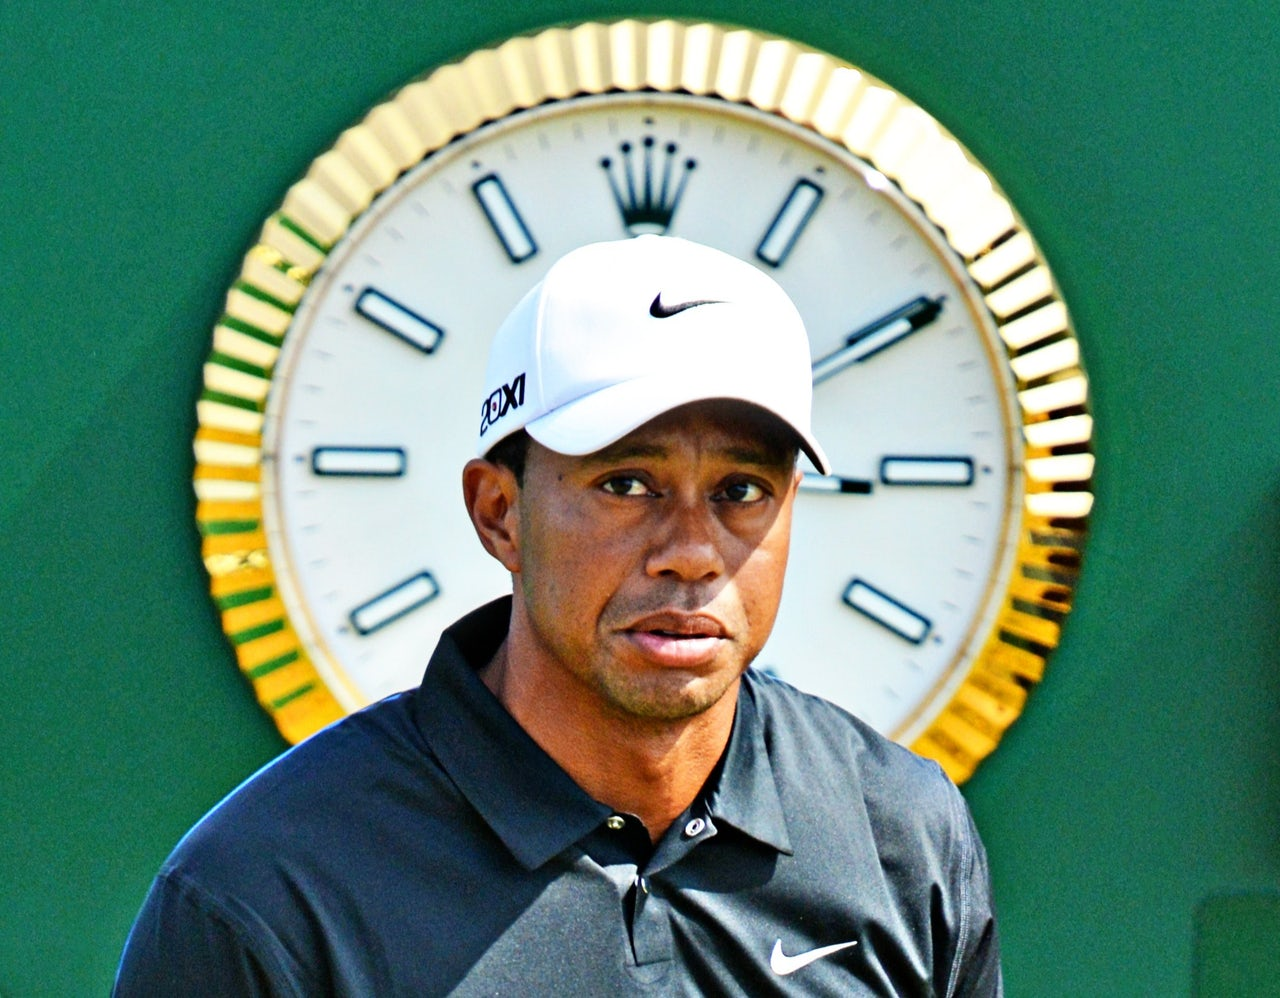 09b863f8a07 Time has not been kind to Tiger Woods